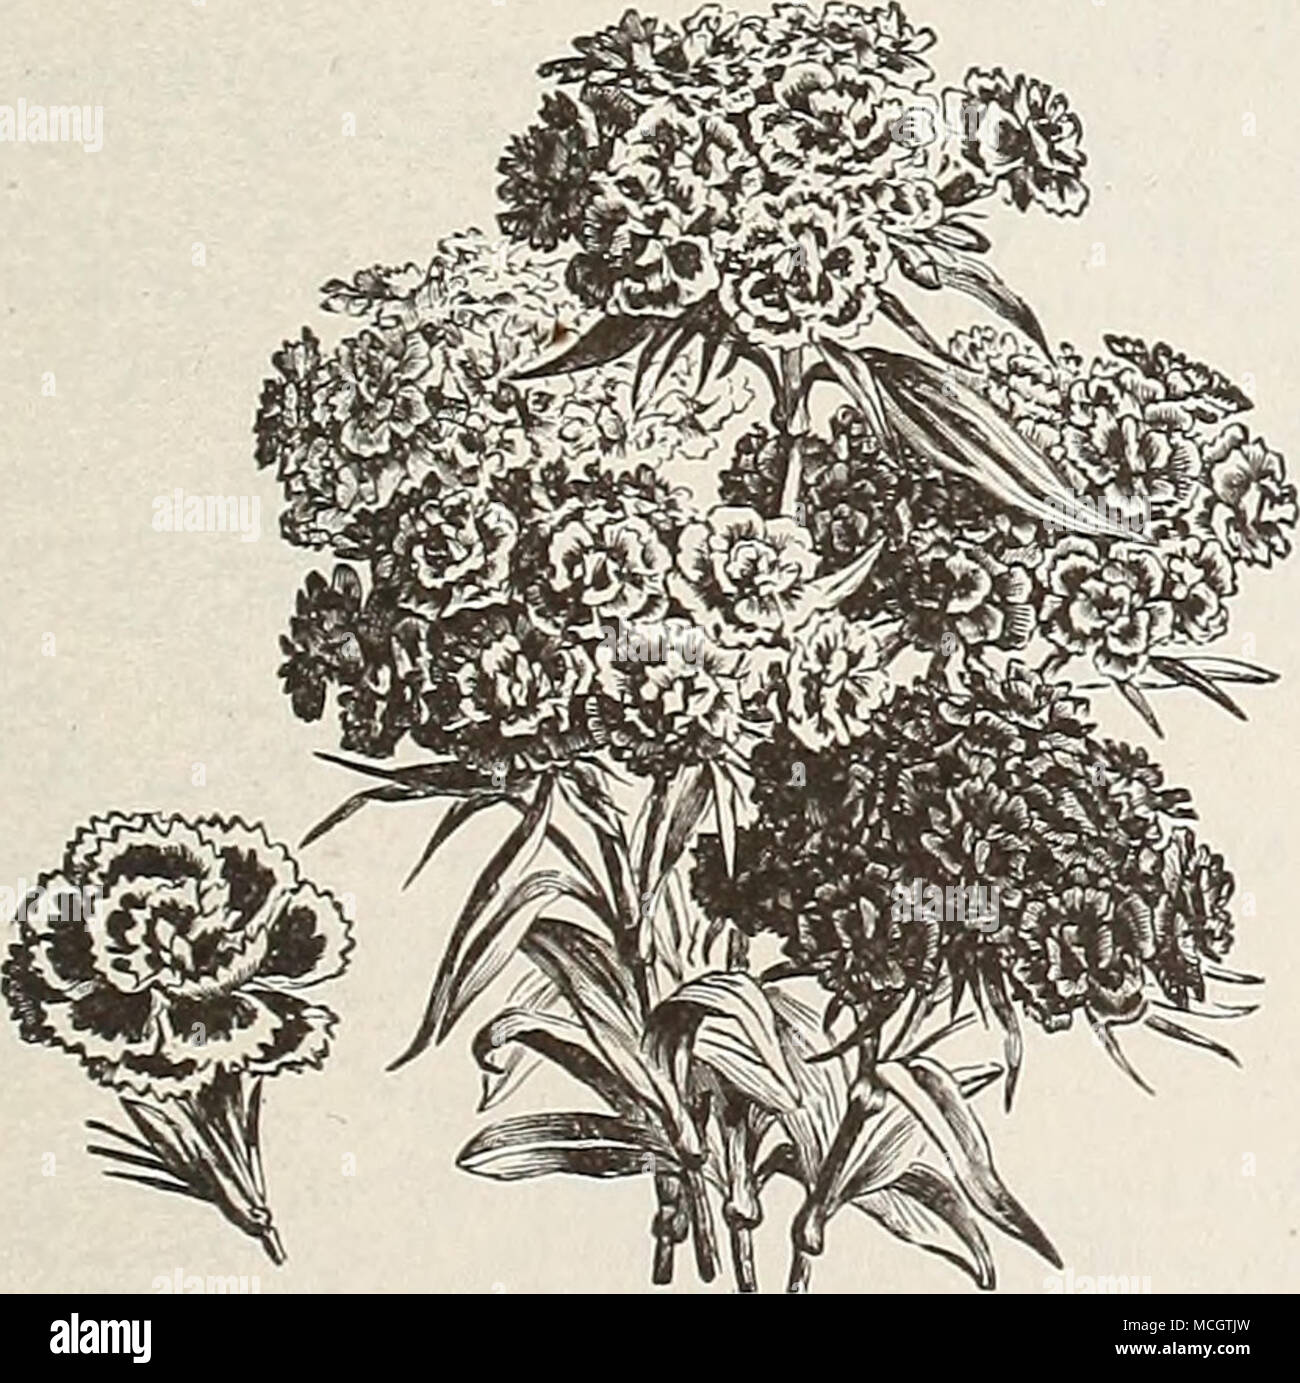 """. Double Sweet William. Suaeet CUilliam. (Dianthus Barbatus.) A well-known attractive free-flowering plant, which has been greatly improved of late years, producing a splendid effect in beds and shrubbery with their rich and varied flowers; hardy perennial; H feet. 6625 Sweet William Auricula Flowered. A beautiful class of """" eyed """" single varieties, all colors. Per oz. 50 cts 10 6640 - Single Mixed. Per oz. 40 cts 5 6630 — Double Mixed. Per oz. §1.00 10 77 STEVIA. Free-blooming plants, bearing a multitude of fragrant flow- ers; suitable for summer or winter blooming. PER PKT. 6622 St - Stock Image"""